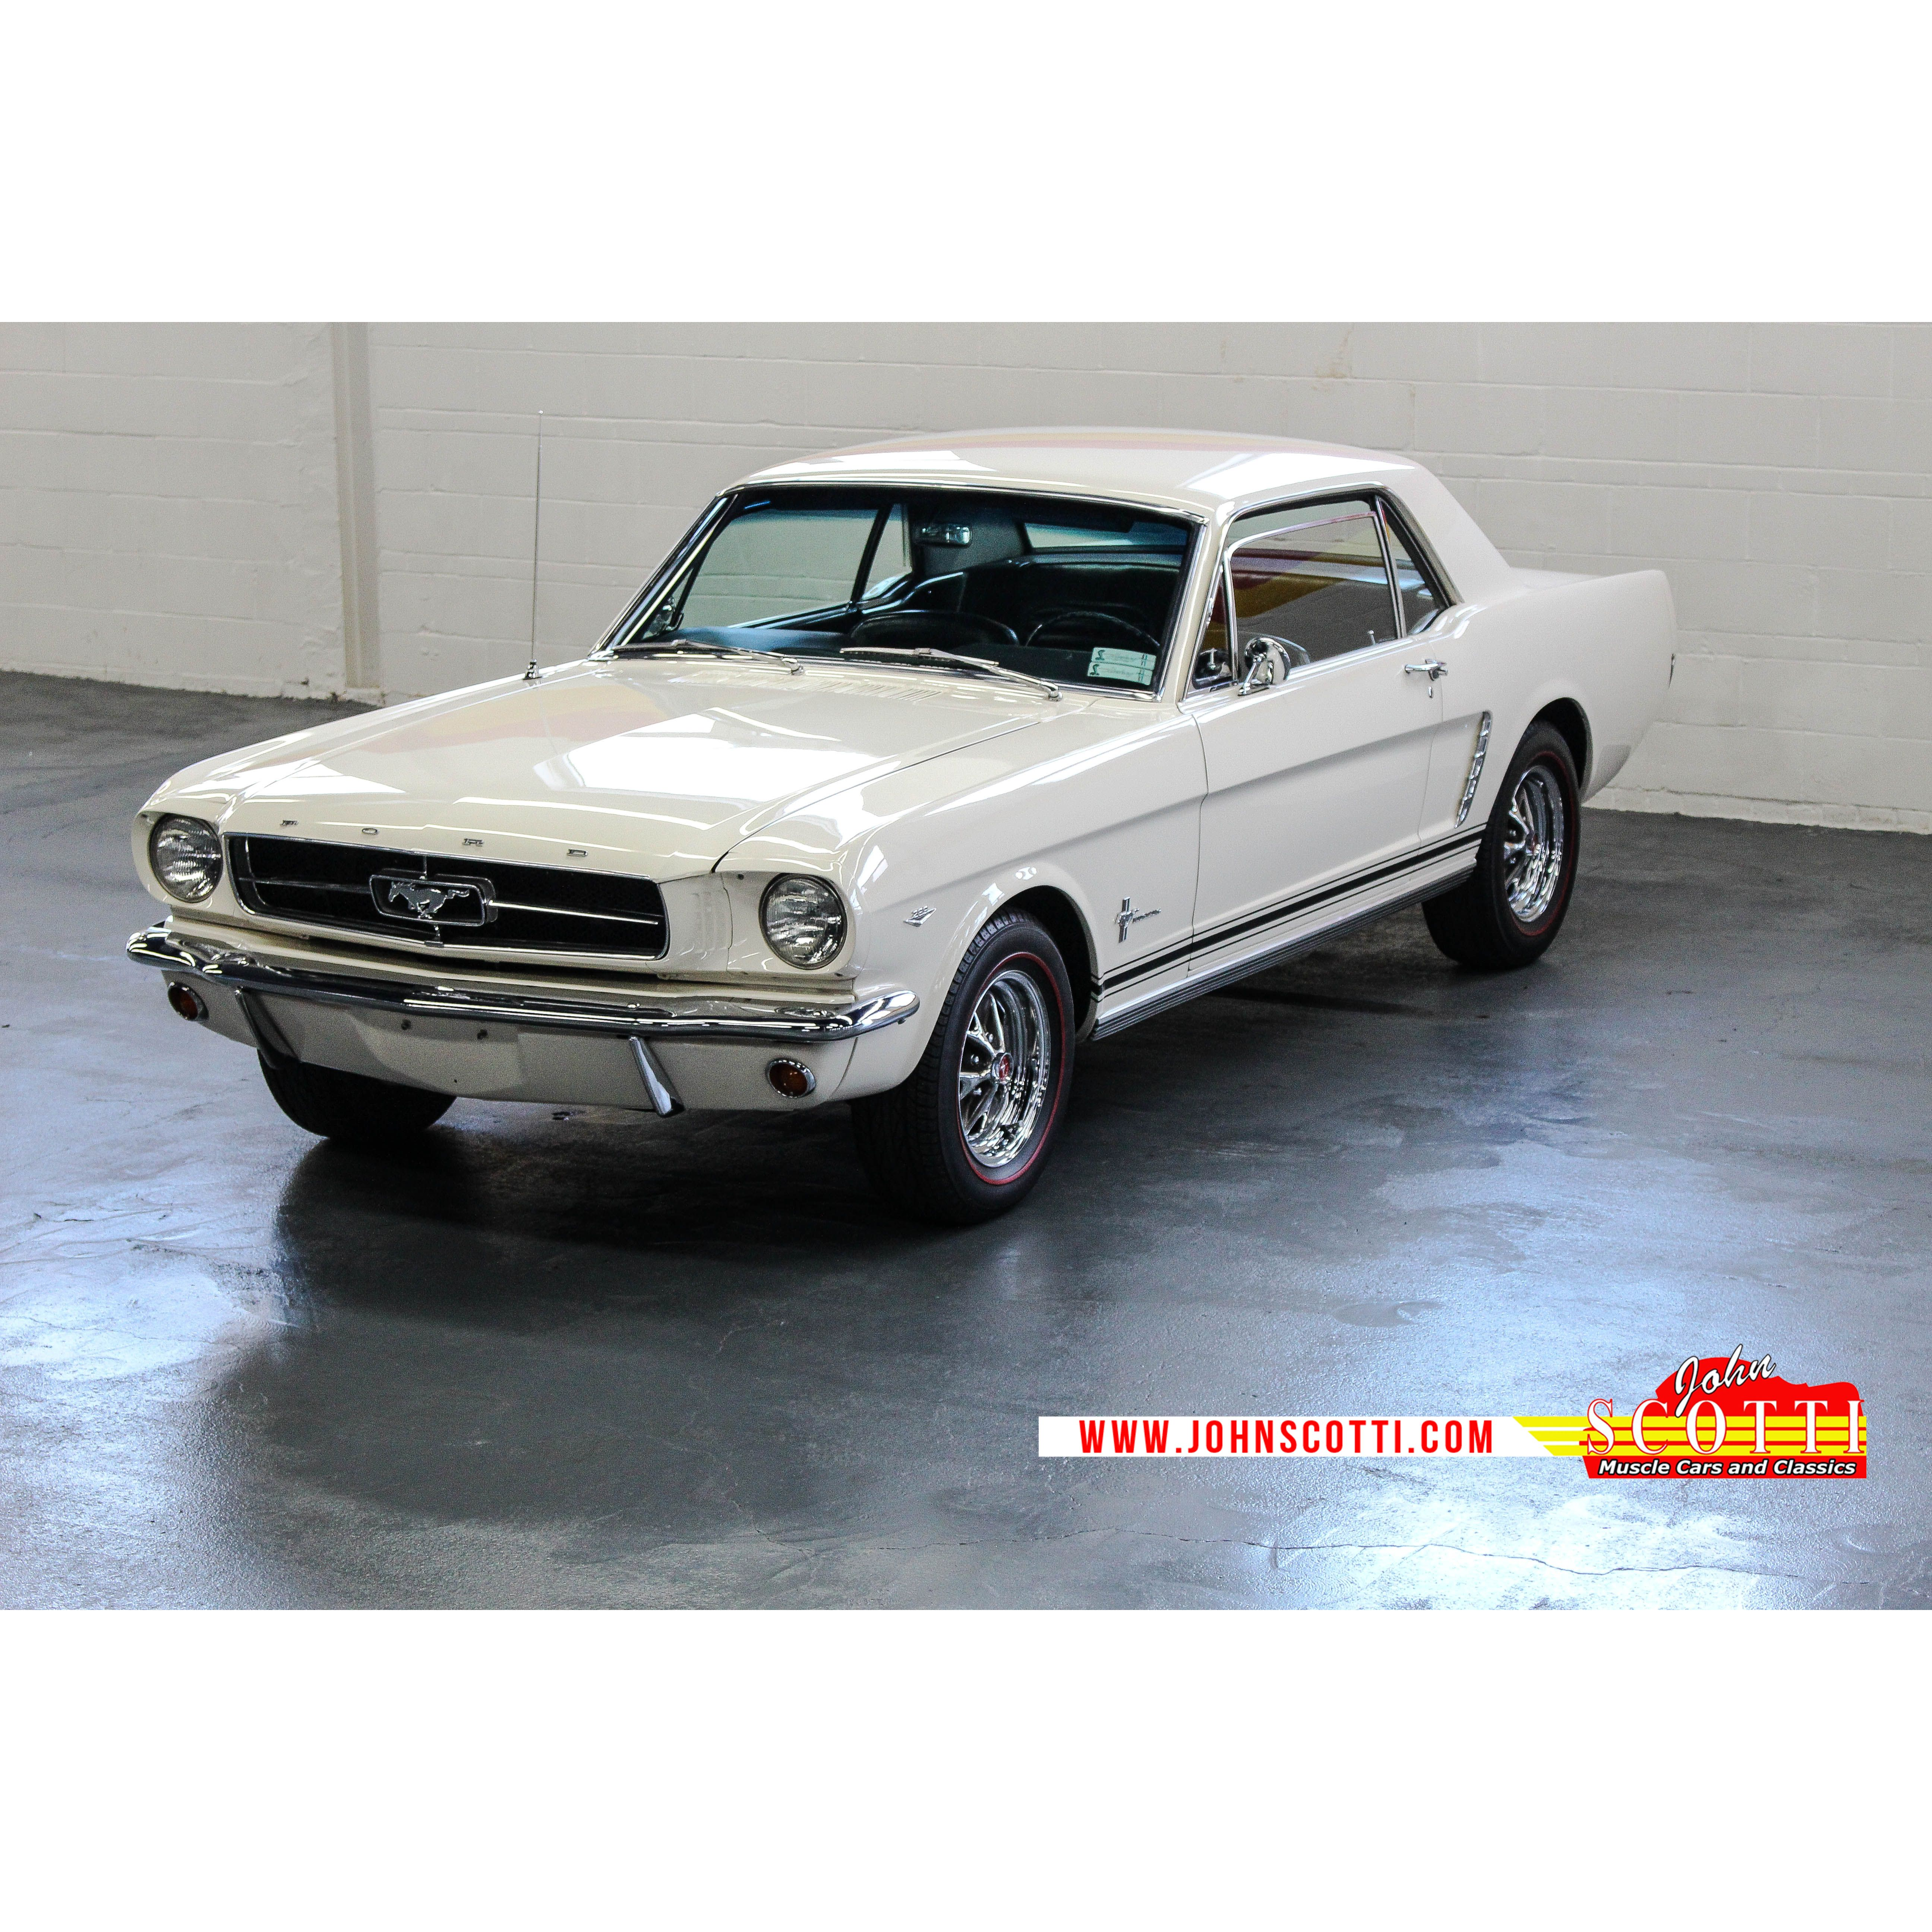 1965 Ford Mustang http://www.johnscotti.com/en/used/1965-ford ...